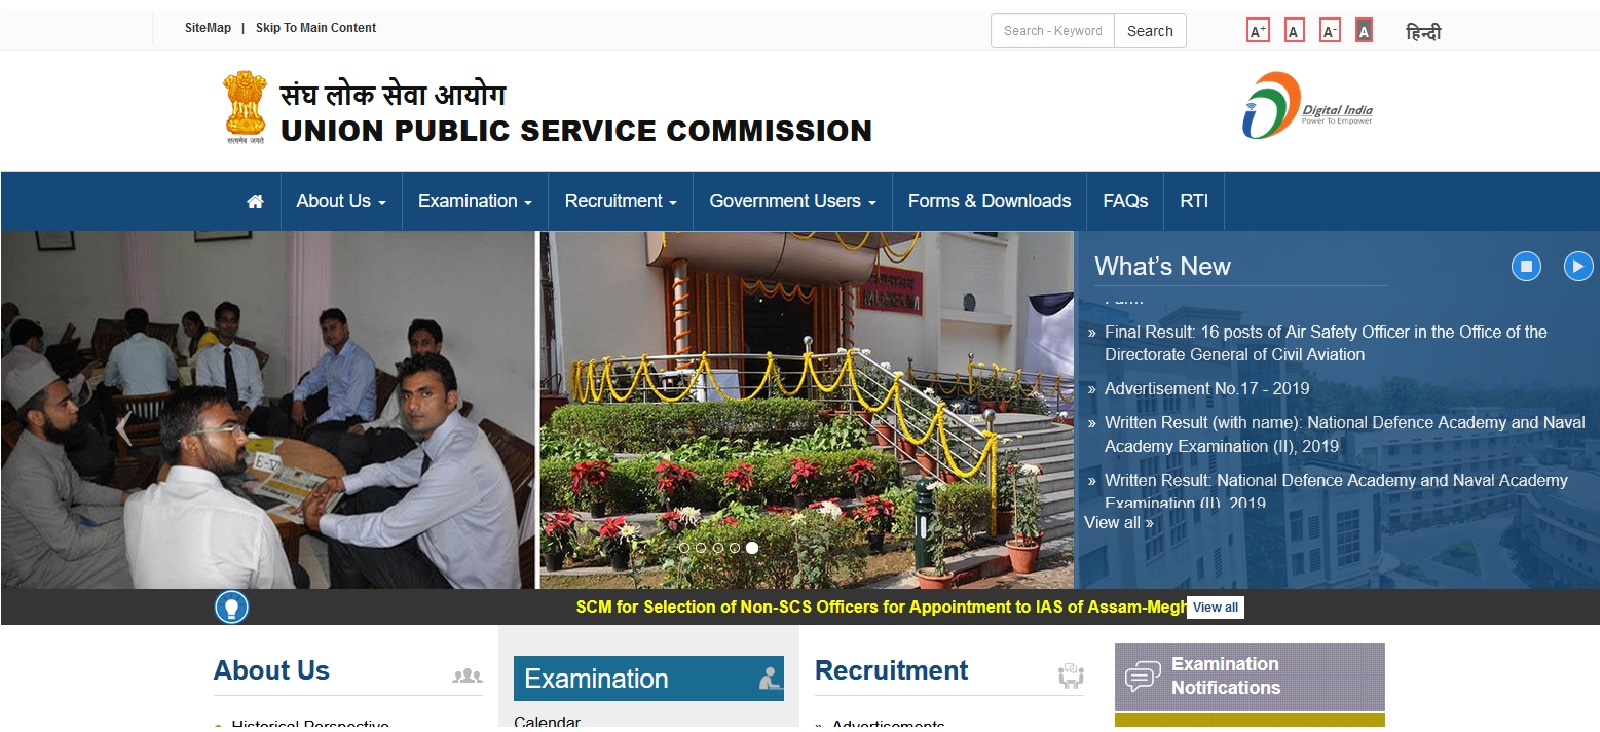 UPSC Civil Services IAF IFS Pre Result 2020, DAF Mains Online Form